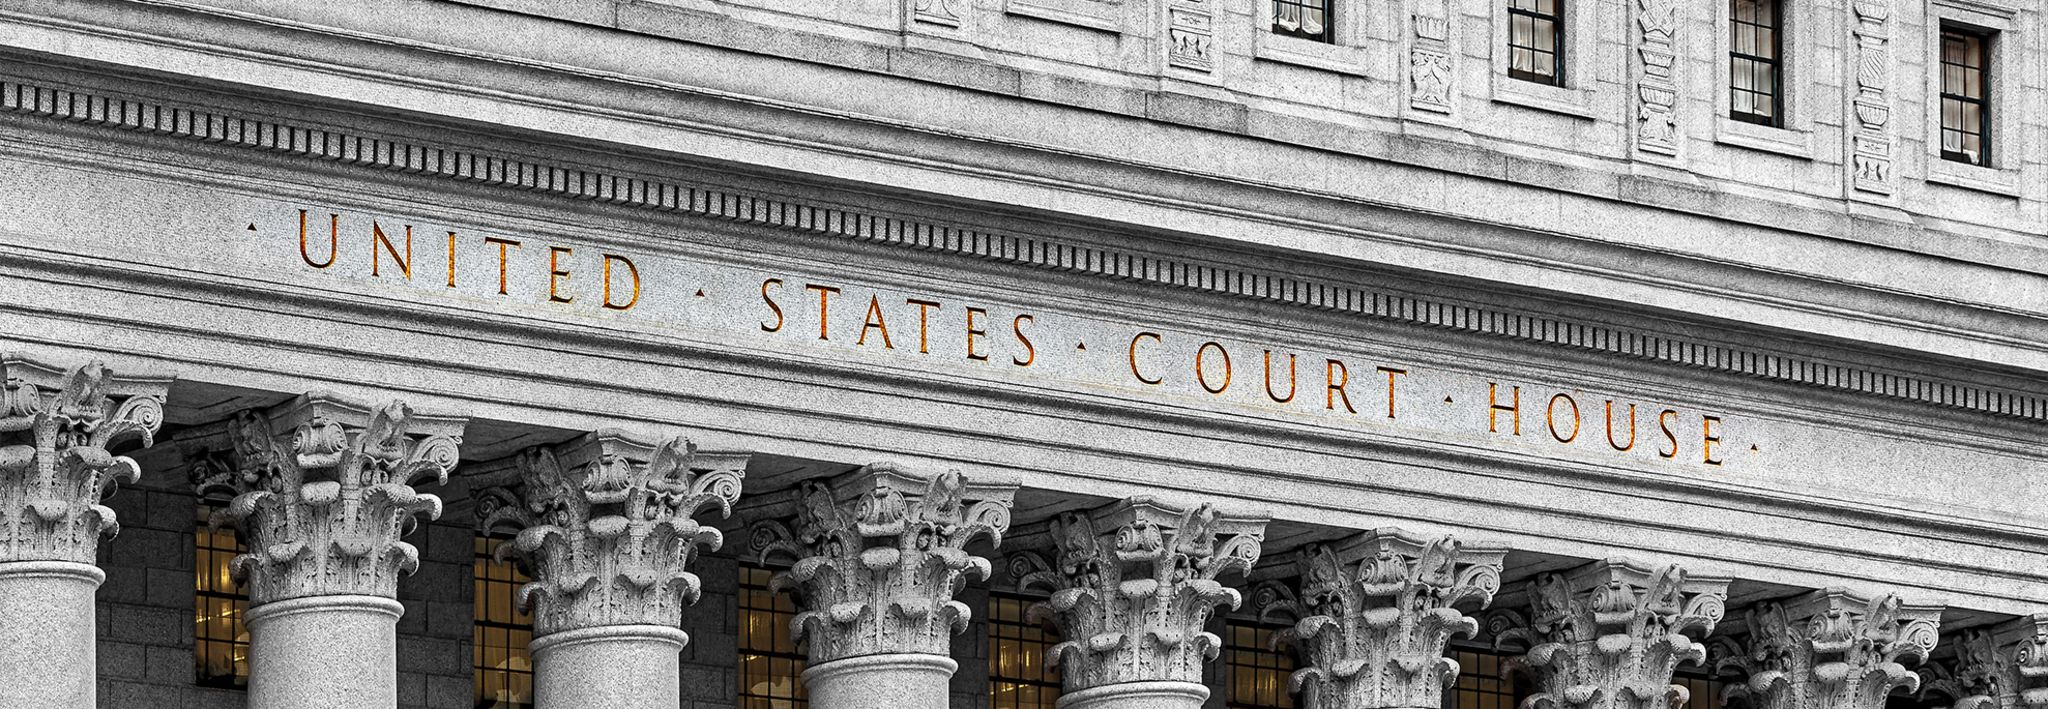 A United States courthouse is located in downtown.